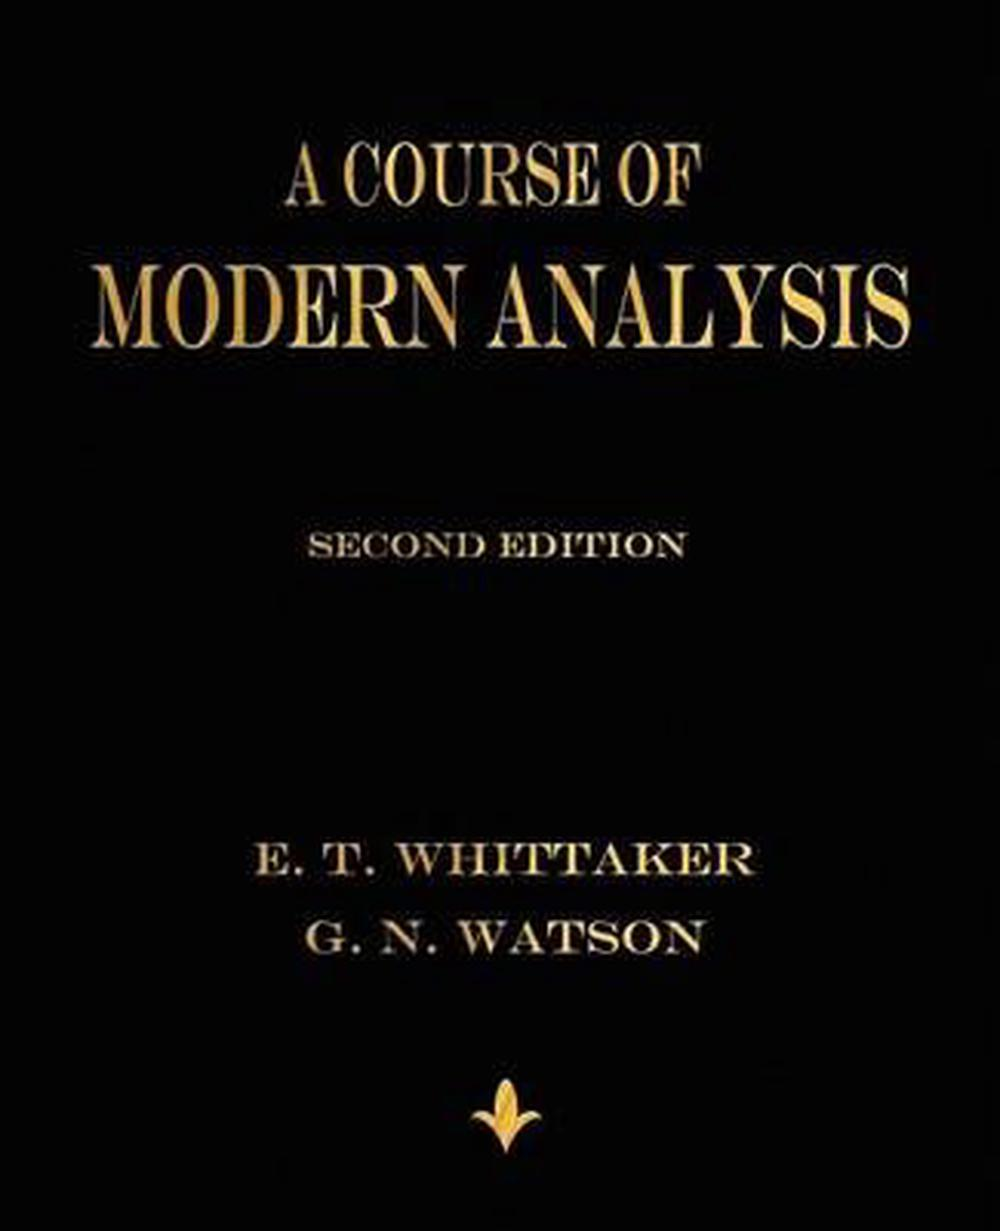 A Course of Modern Analysis by E. T. Whittaker, ISBN: 9781603864541